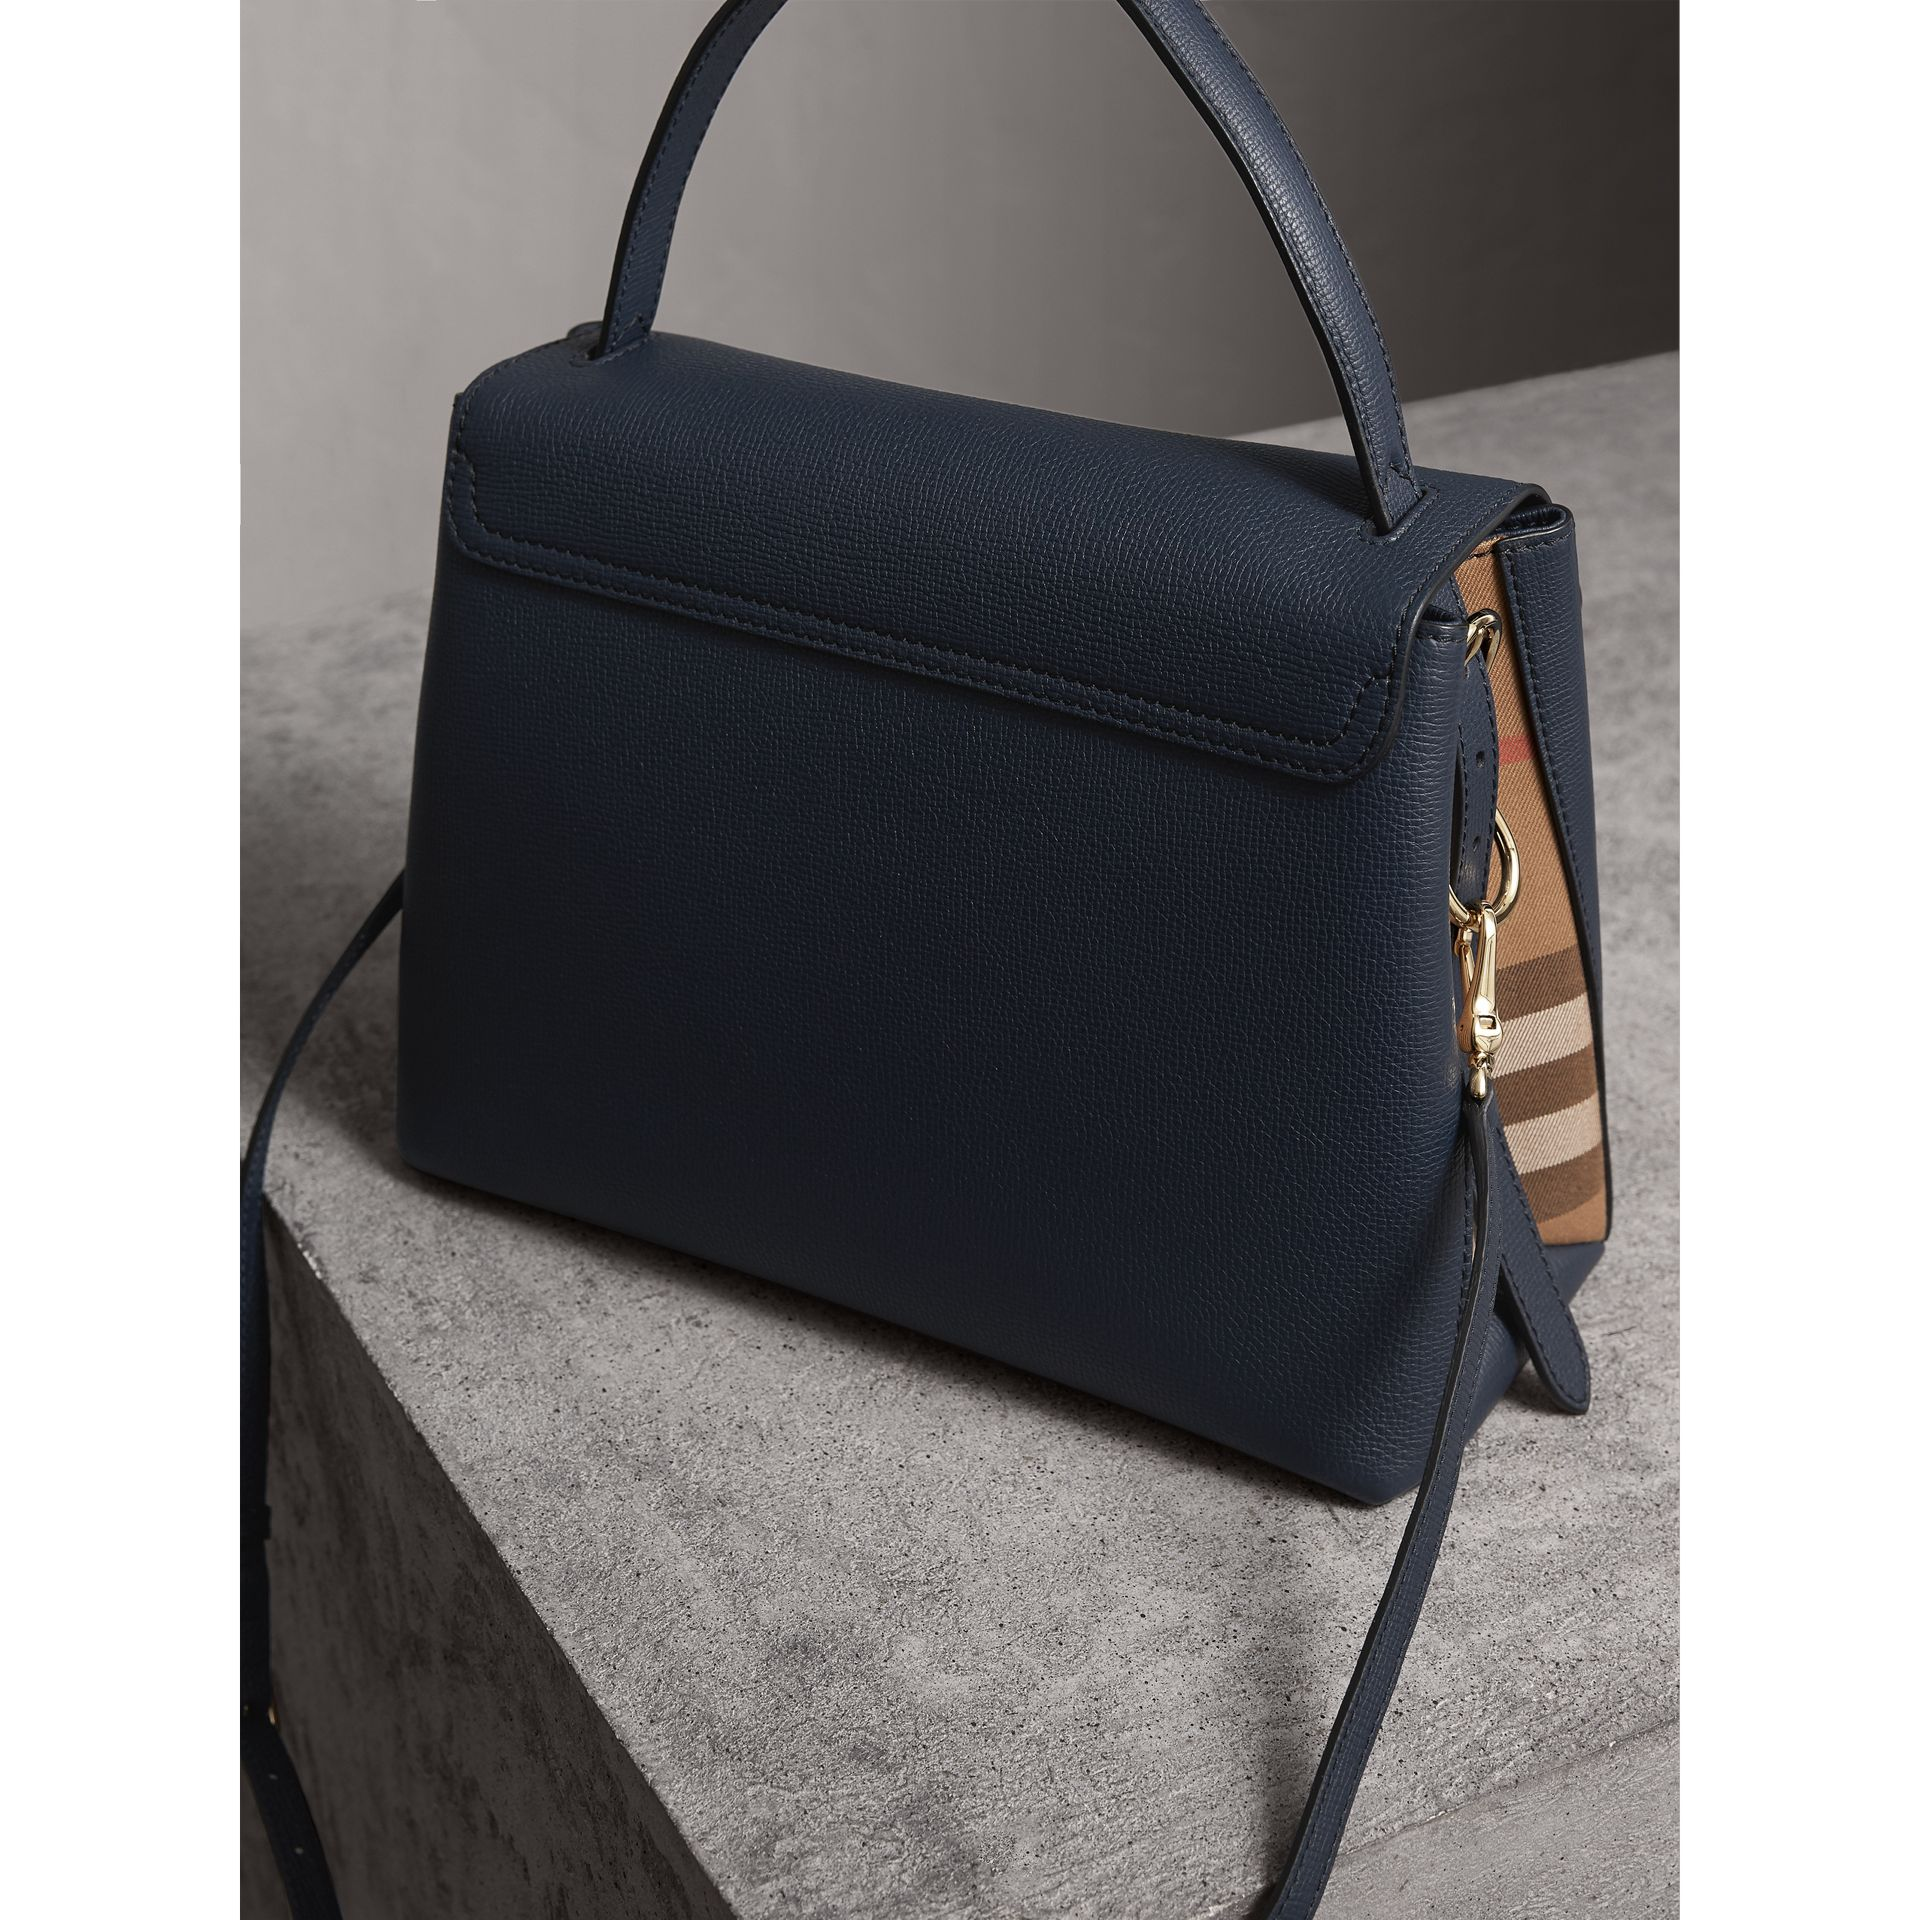 Medium Grainy Leather and House Check Tote Bag in Ink Blue - Women | Burberry United Kingdom - gallery image 5